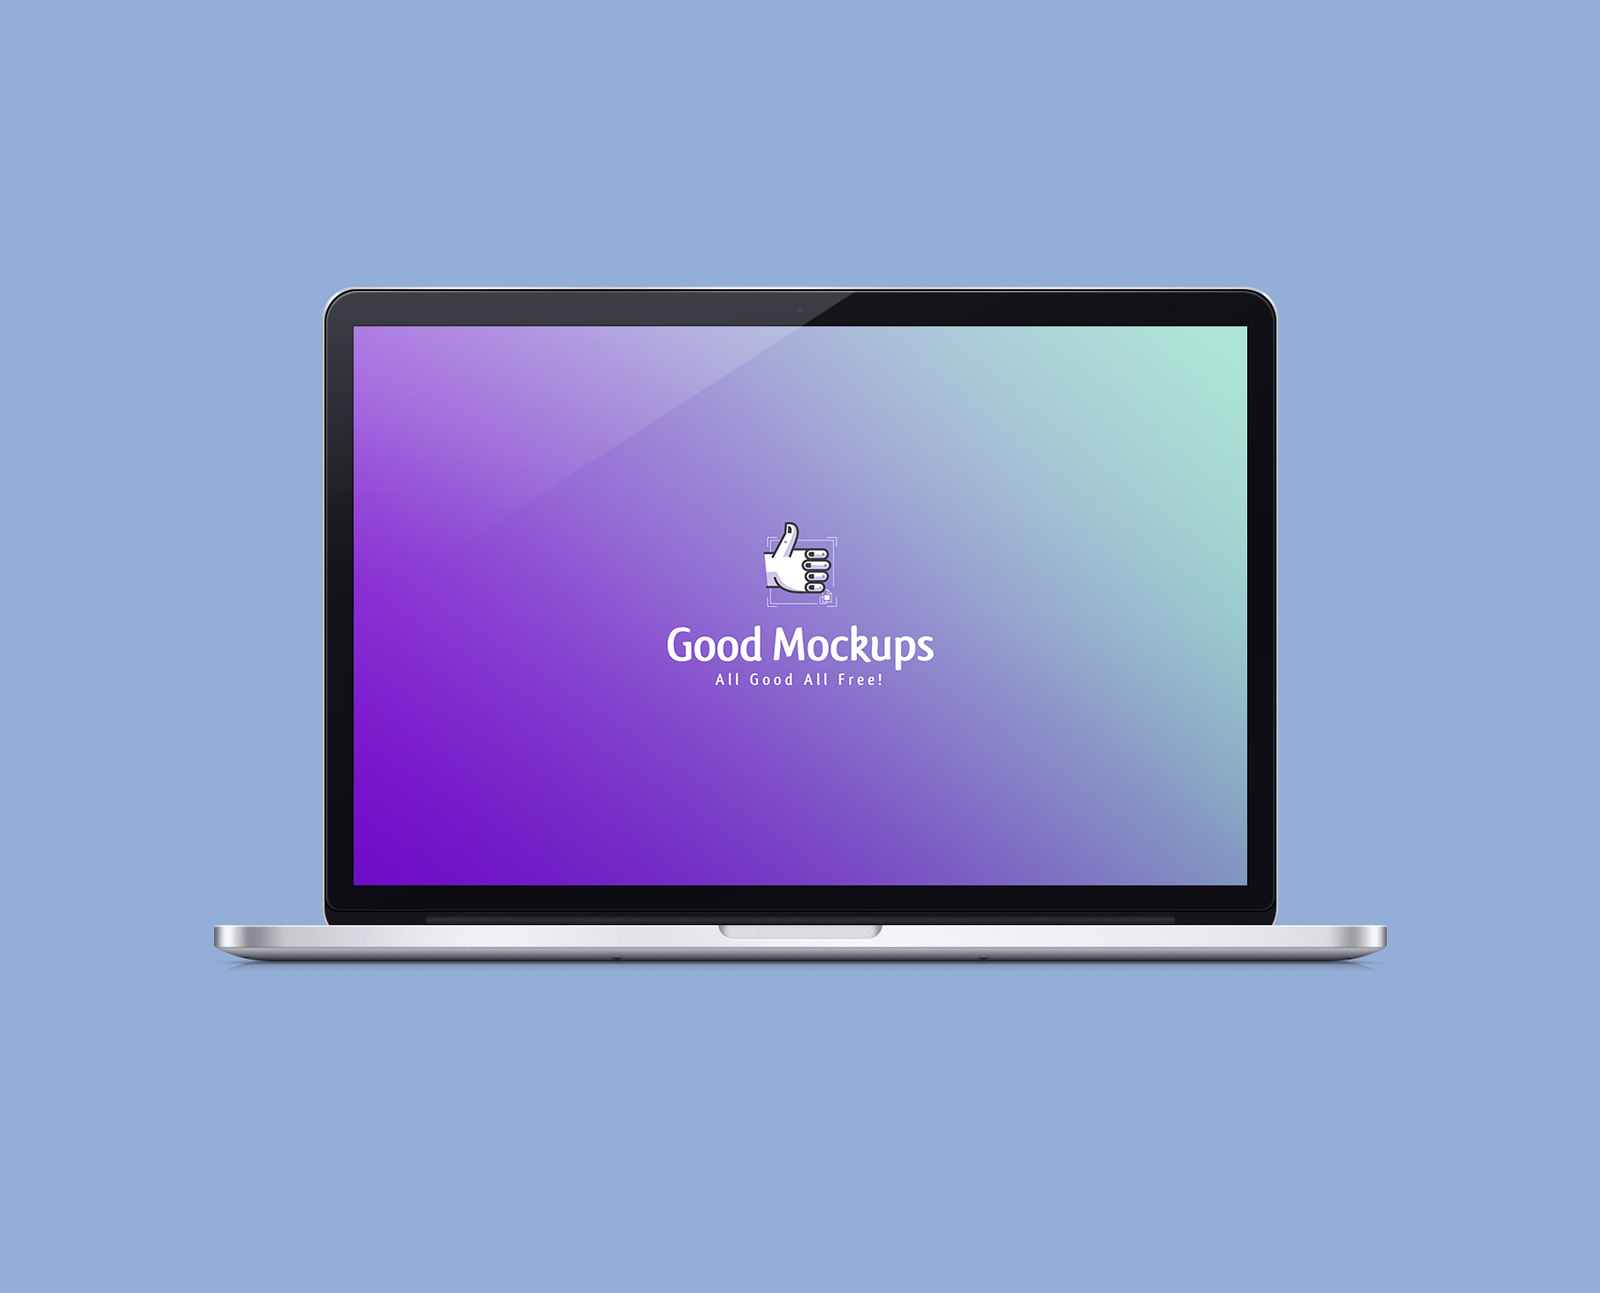 15 Free Apple MacBook Pro Mockup PSDs in Different Angles